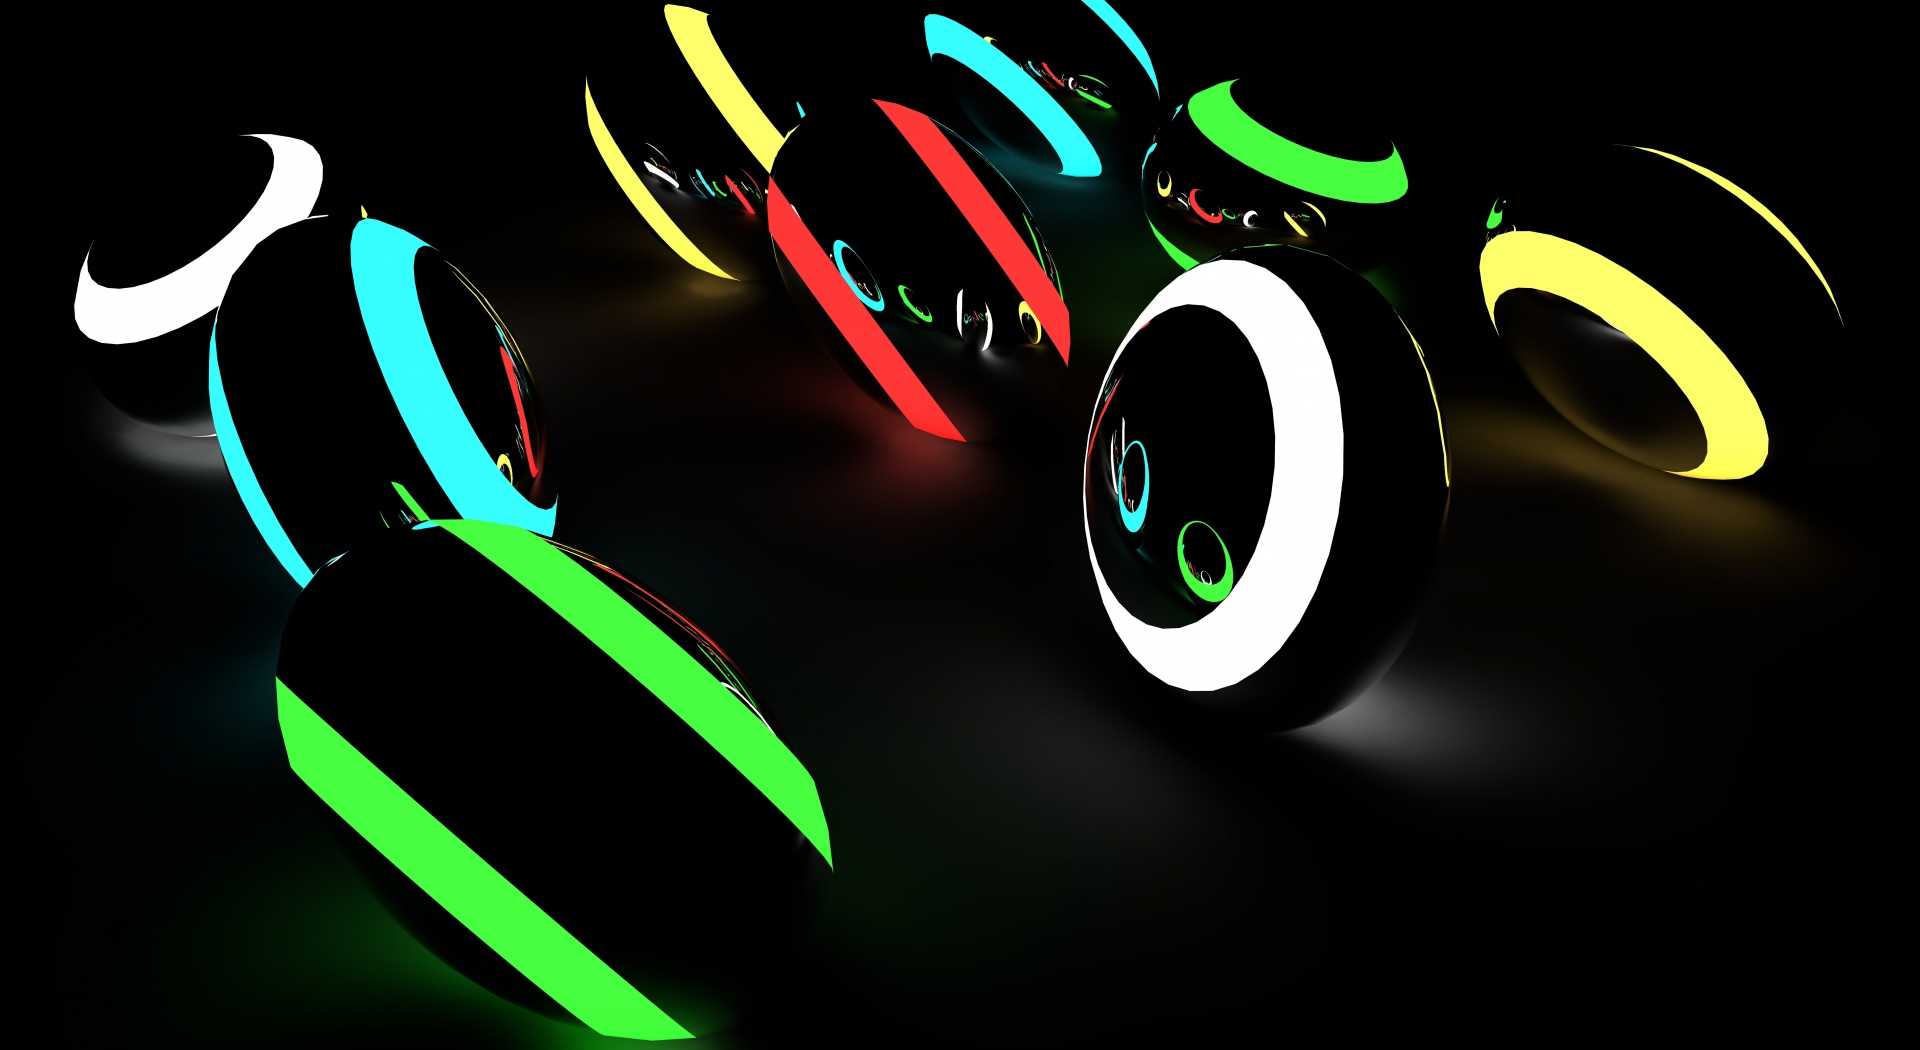 neon hd desktop background